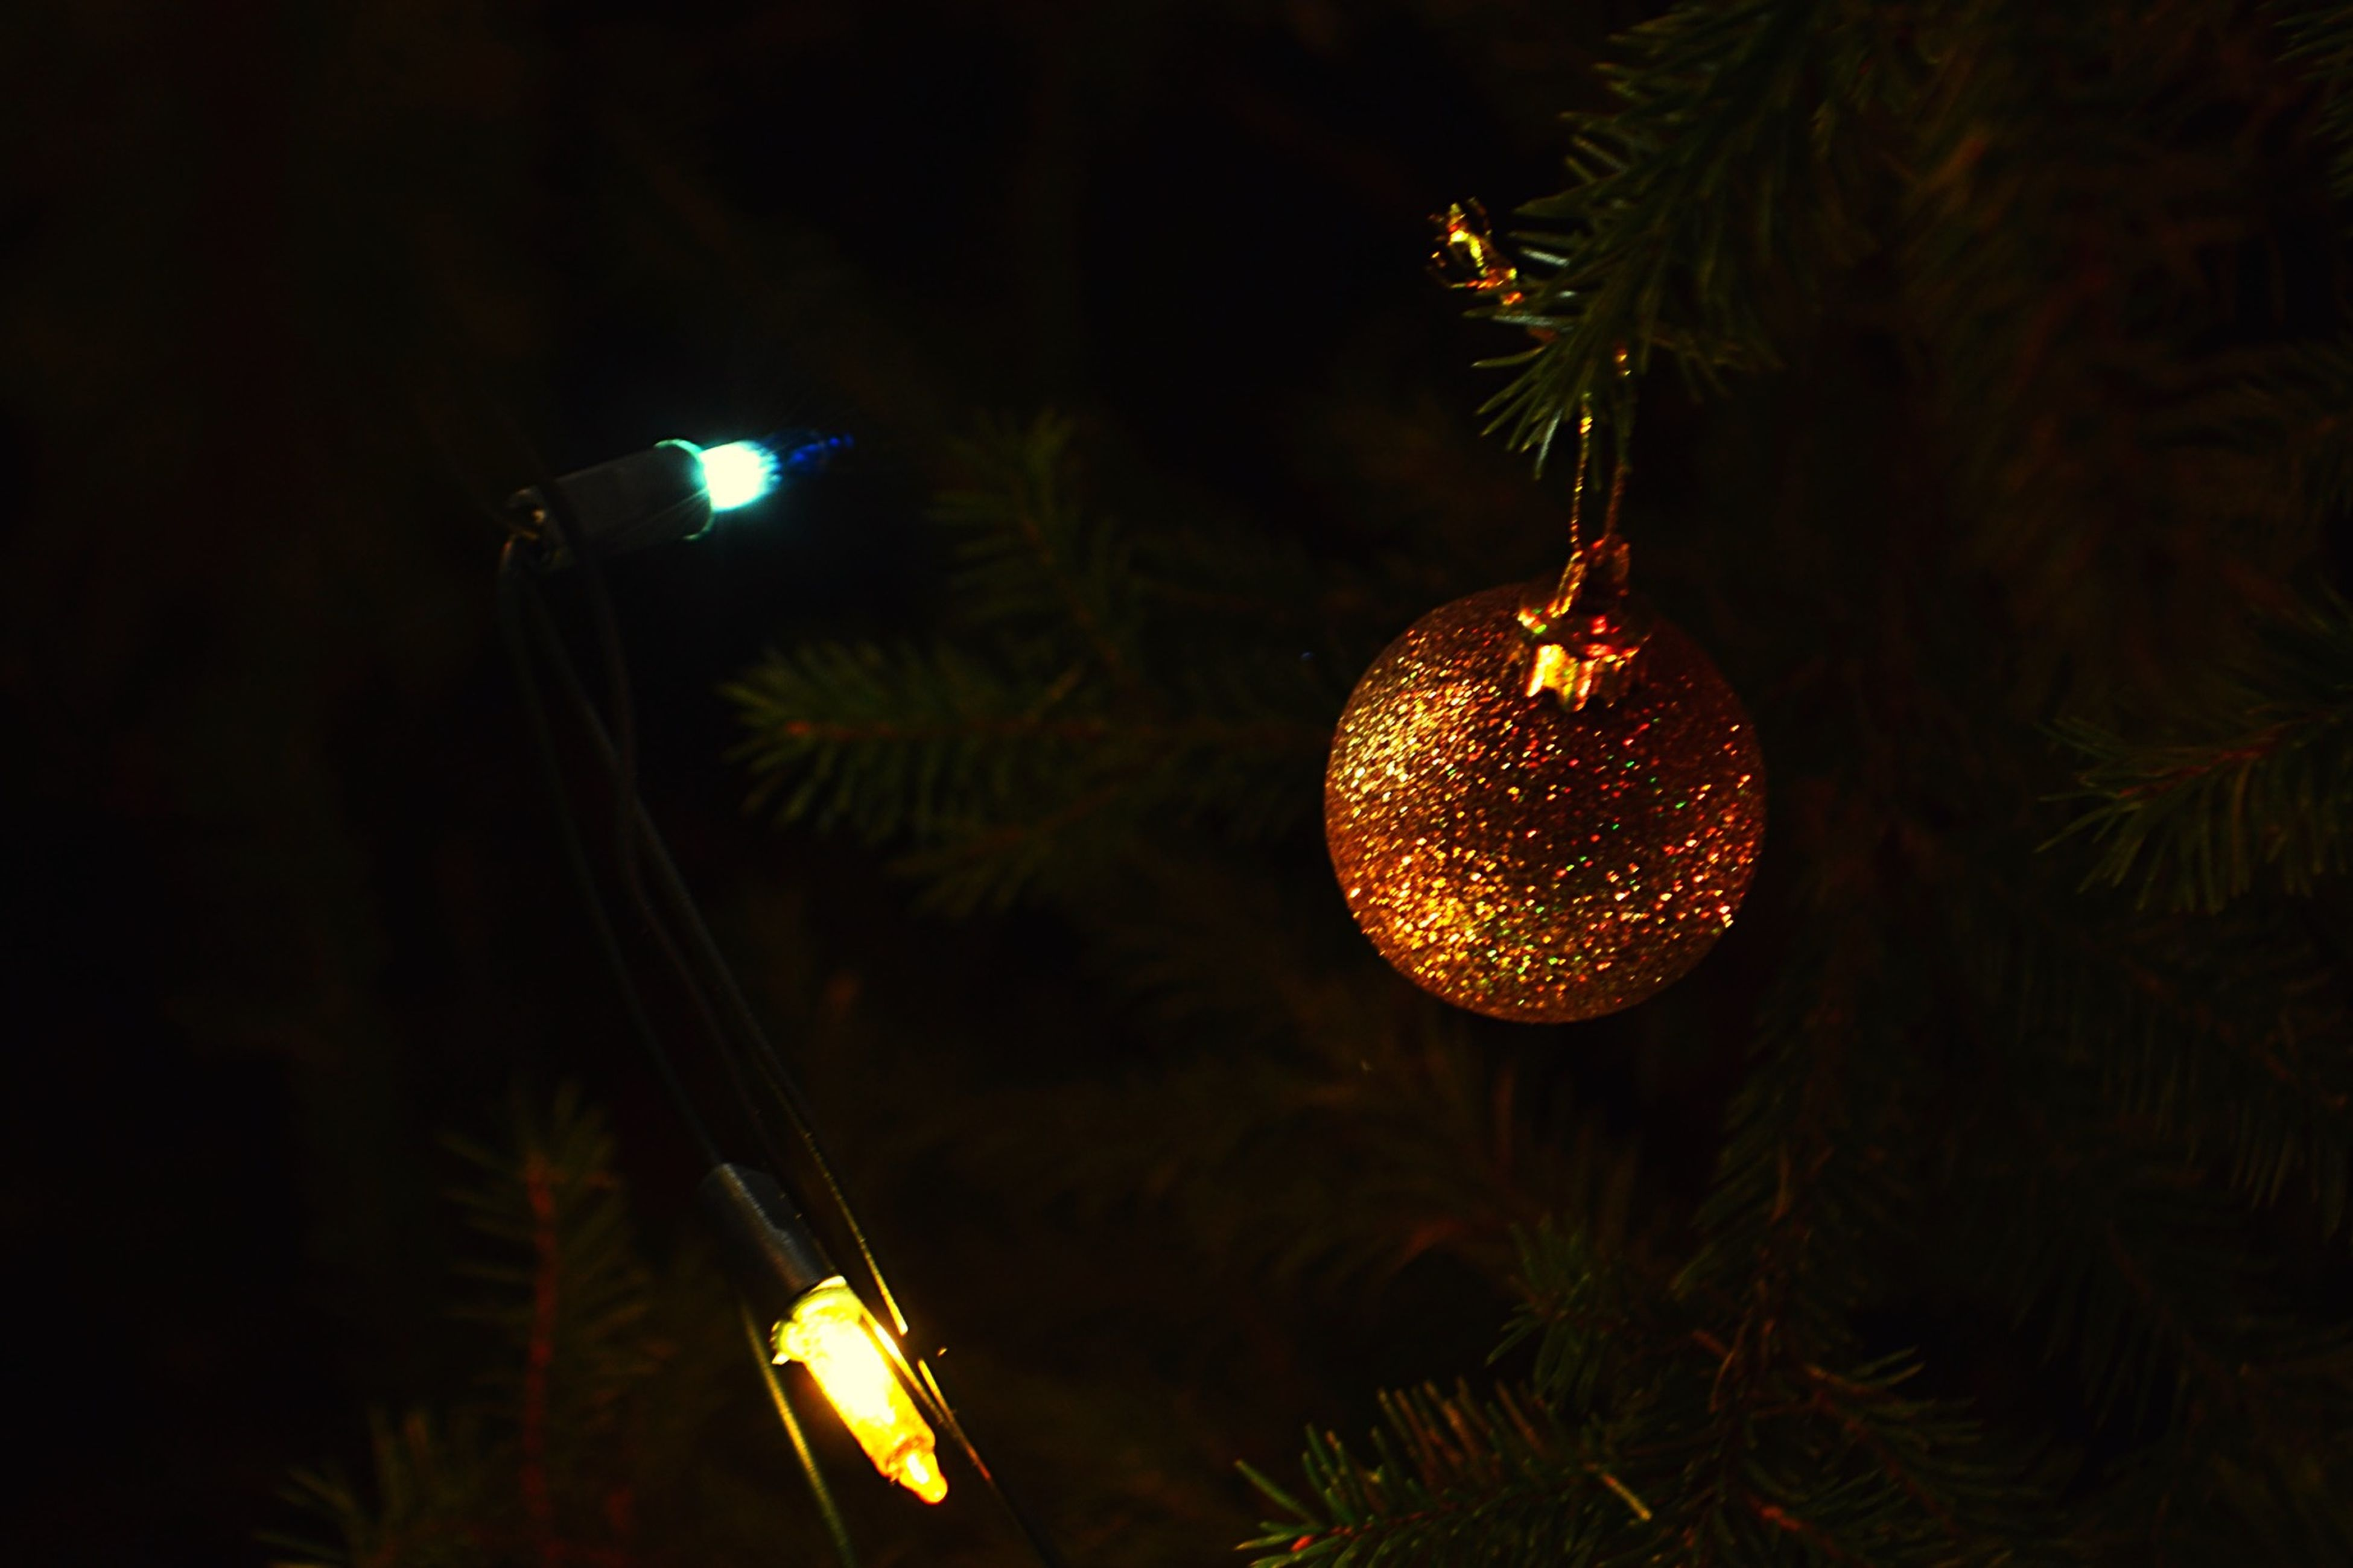 illuminated, night, lighting equipment, glowing, celebration, decoration, low angle view, hanging, electricity, lit, light bulb, electric light, lantern, christmas decoration, decor, light - natural phenomenon, electric lamp, christmas, close-up, indoors